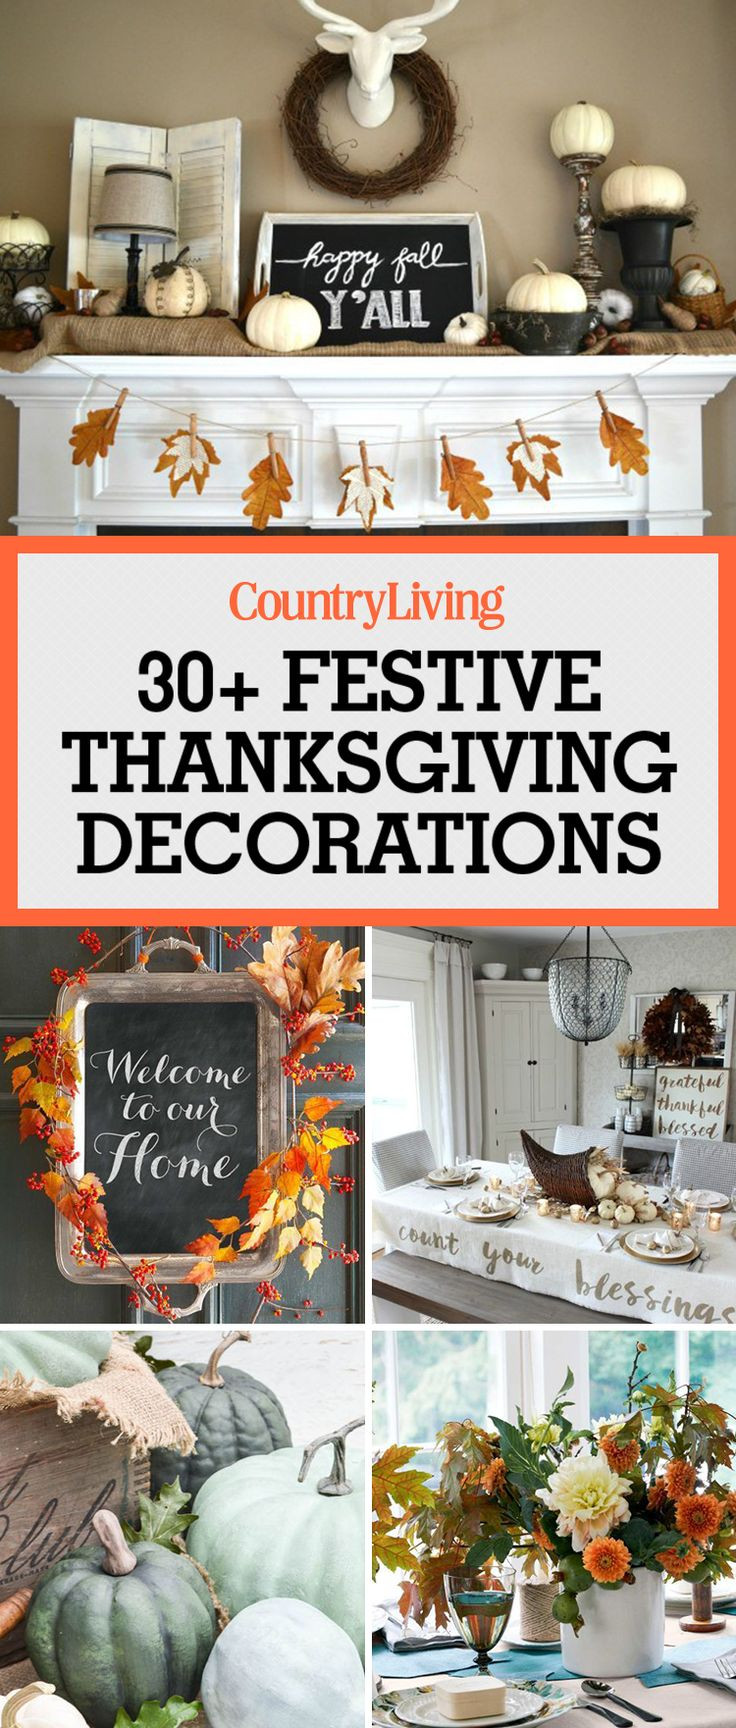 Turkey Decorations For Thanksgiving  1000 ideas about Thanksgiving Decorations on Pinterest